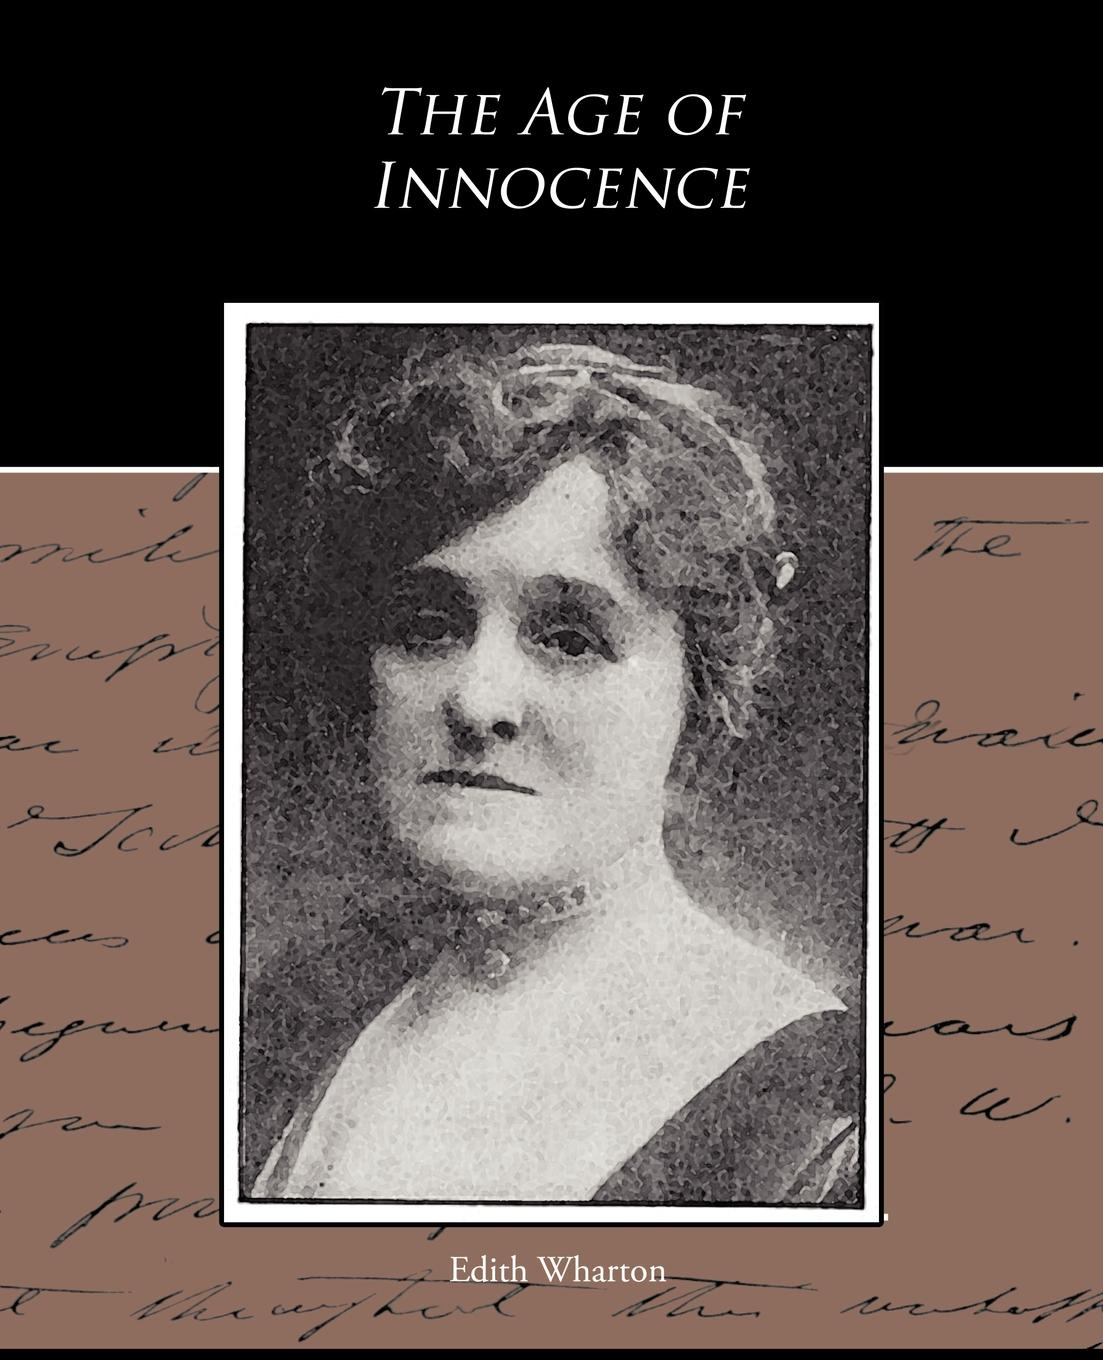 лучшая цена Edith Wharton The Age of Innocence